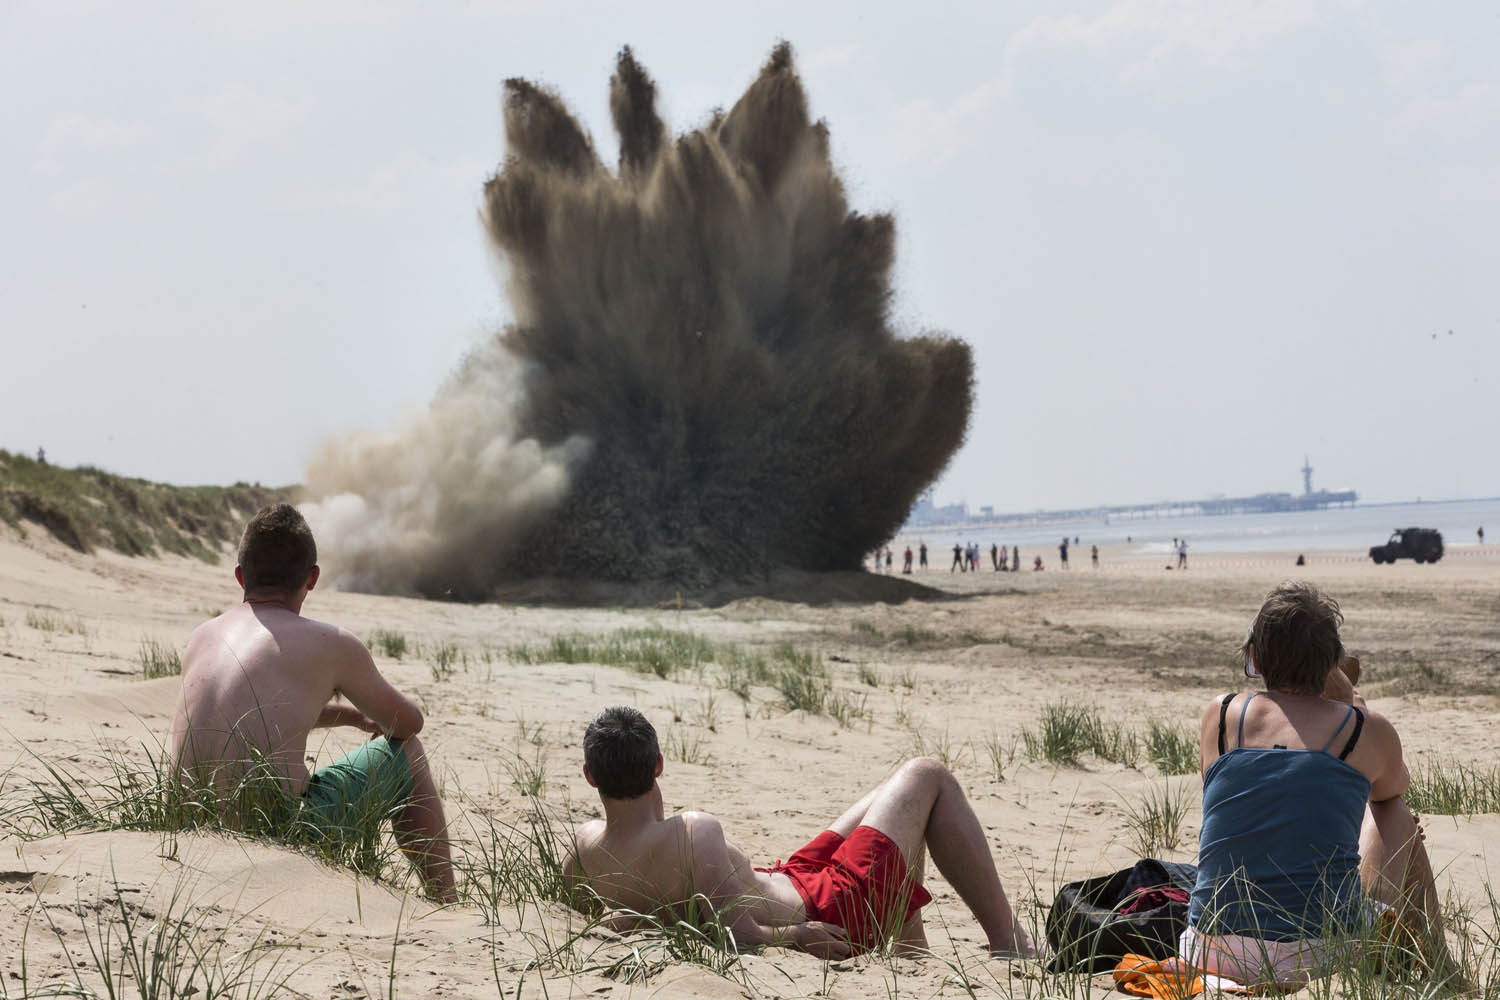 May 19, 2014. Beach goers watch the detonation of a 500 pound British bomb on the beach in Wassenaar, Netherlands. The bomb was dropped by the British allied forces during the second world war over nearby Leiden where it was found on a building site.